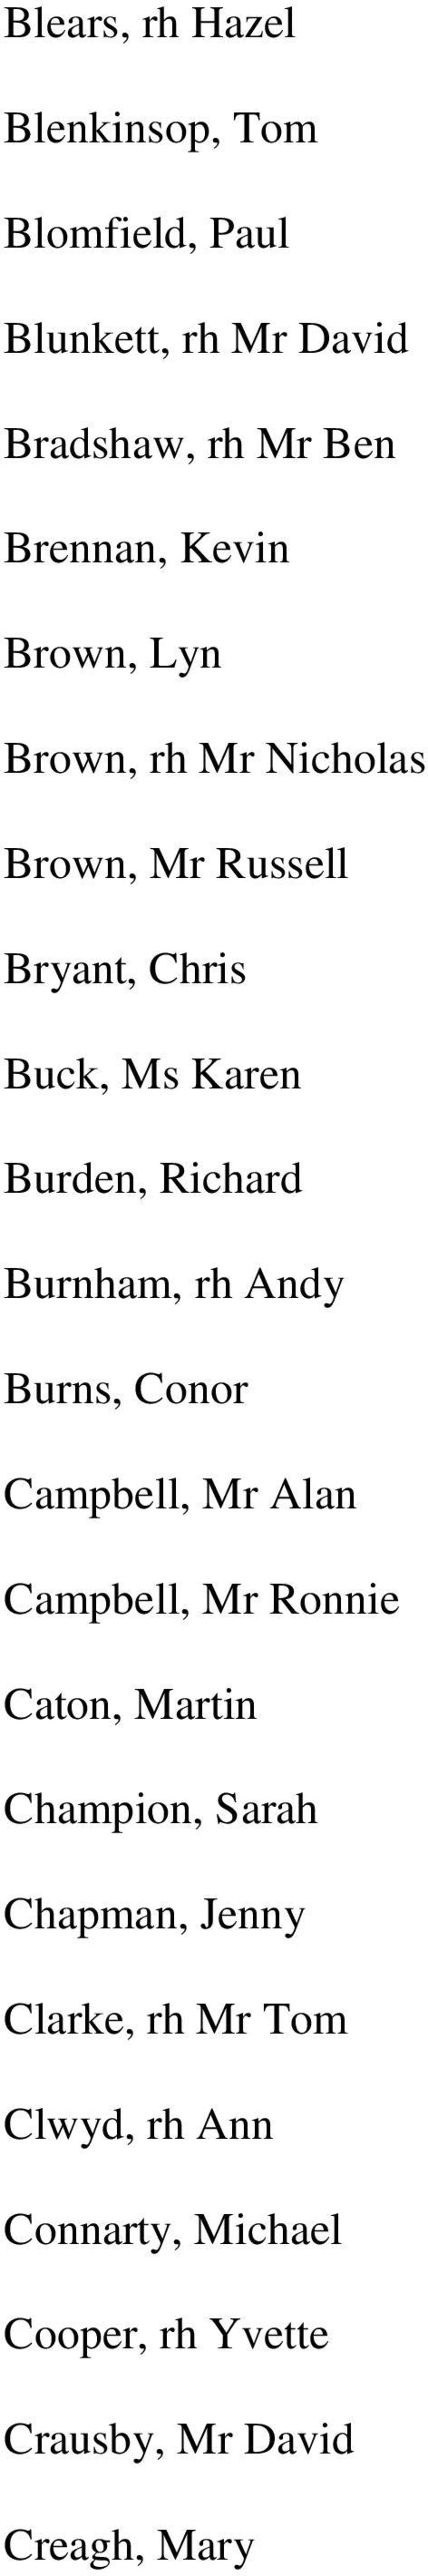 Burnham, rh Andy Burns, Conor Campbell, Mr Alan Campbell, Mr Ronnie Caton, Martin Champion, Sarah